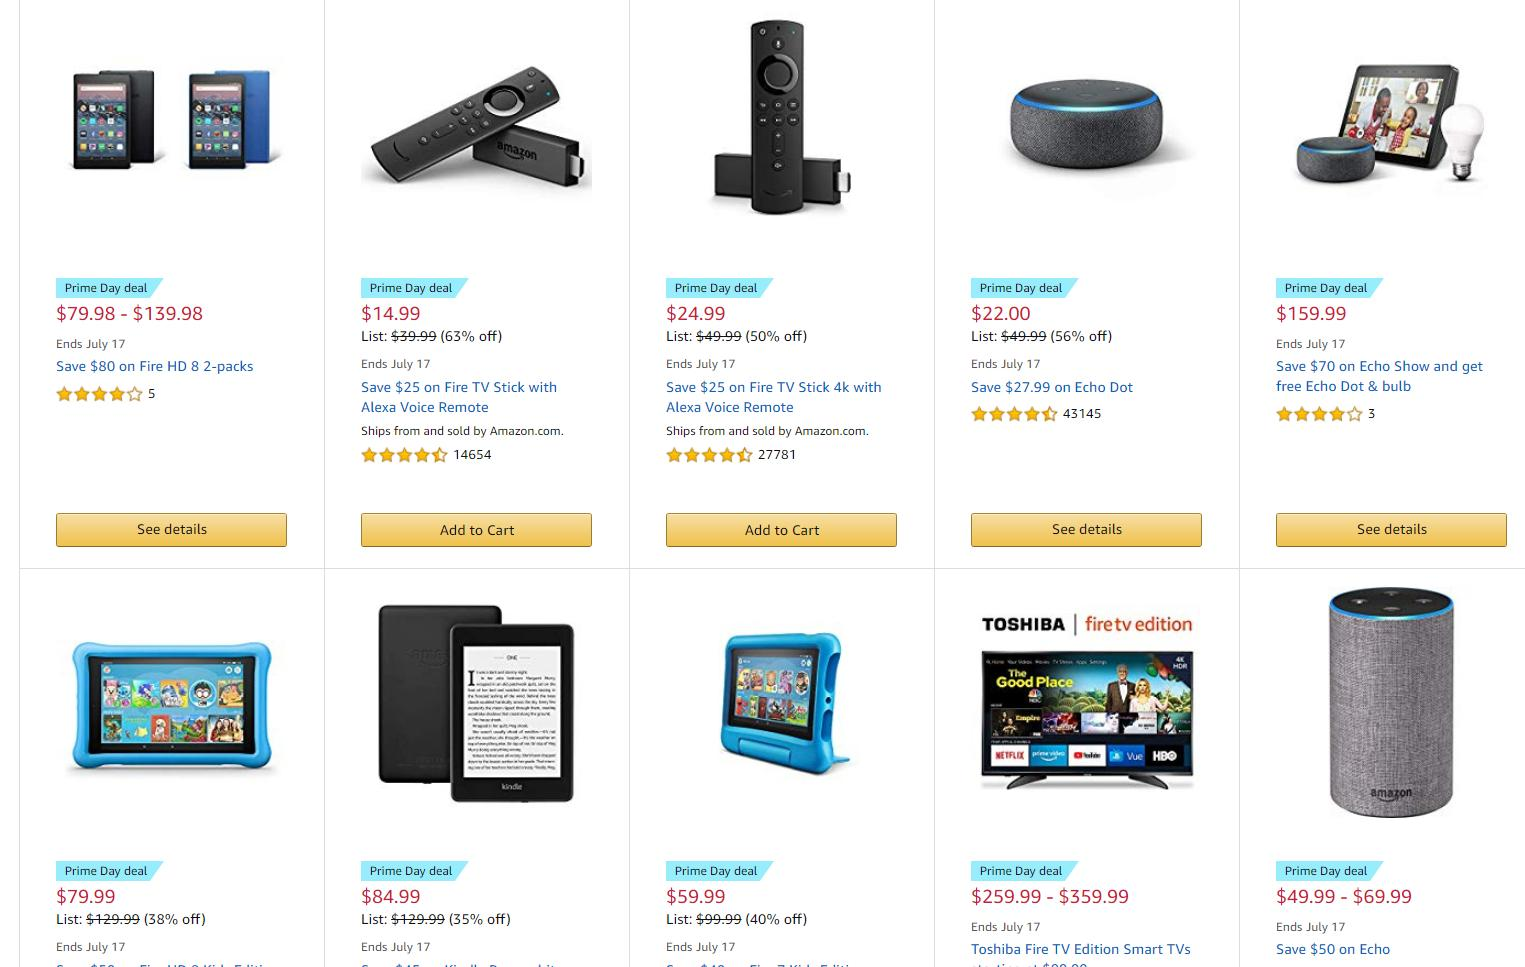 HOT DEAL ALERT: Amazon Prime Day device deals are available NOW